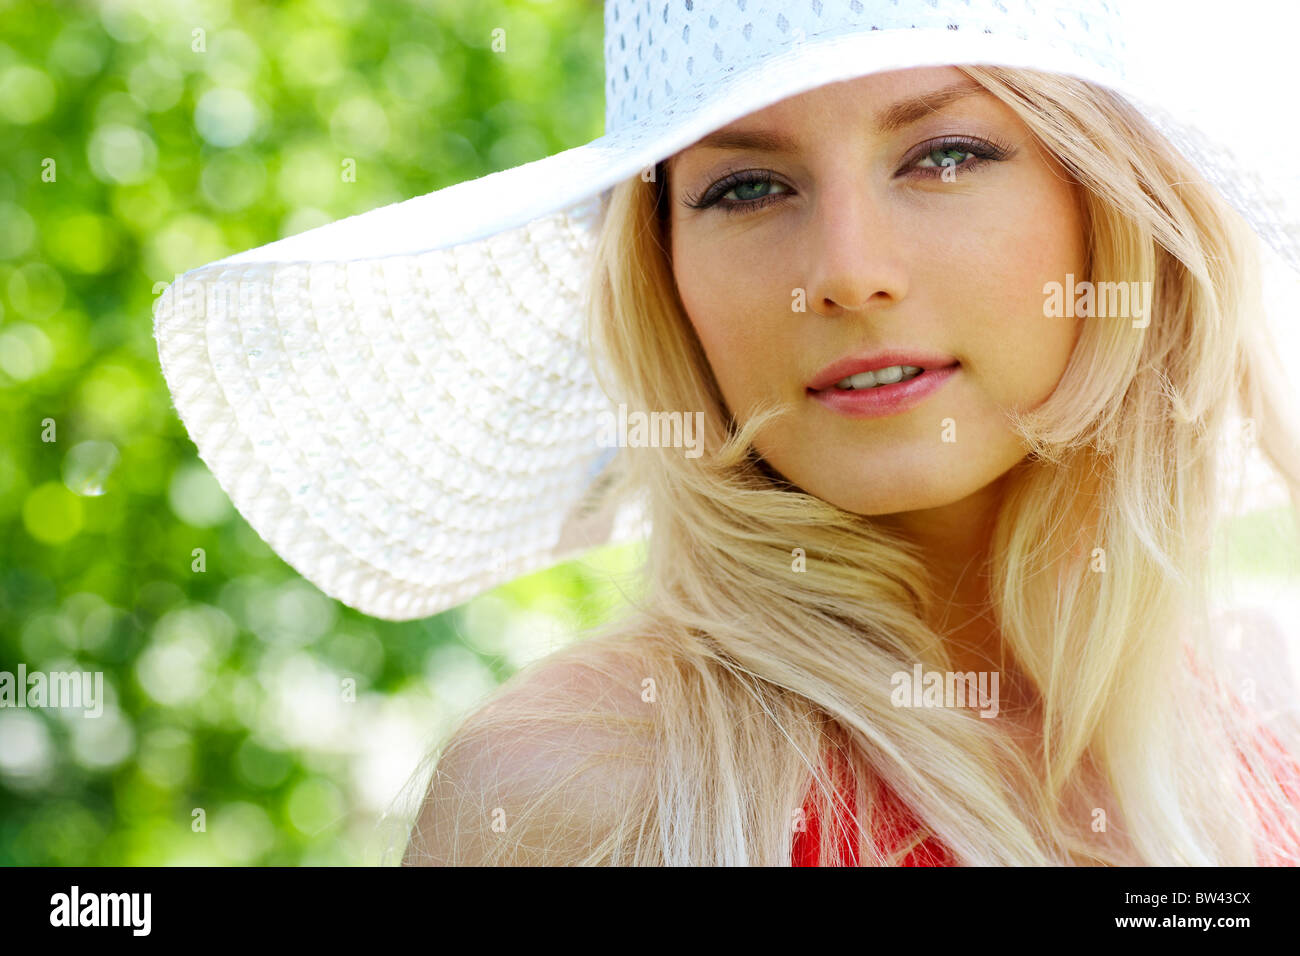 Portrait of pretty young lady in elegant hat looking at camera Stock Photo